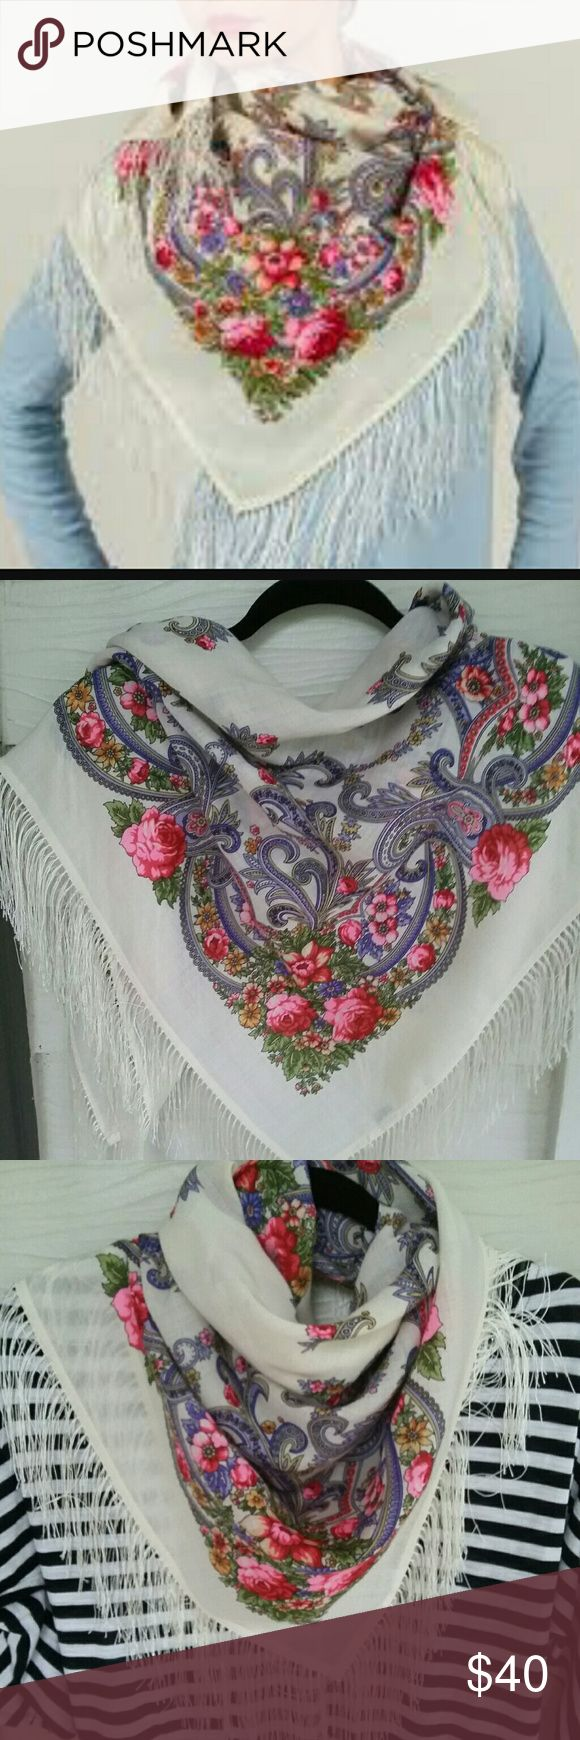 "Scarf floral Woolen scarf, 100% wool, silk fringe. Size 35"" × 35 "" Russian Accessories Scarves & Wraps"